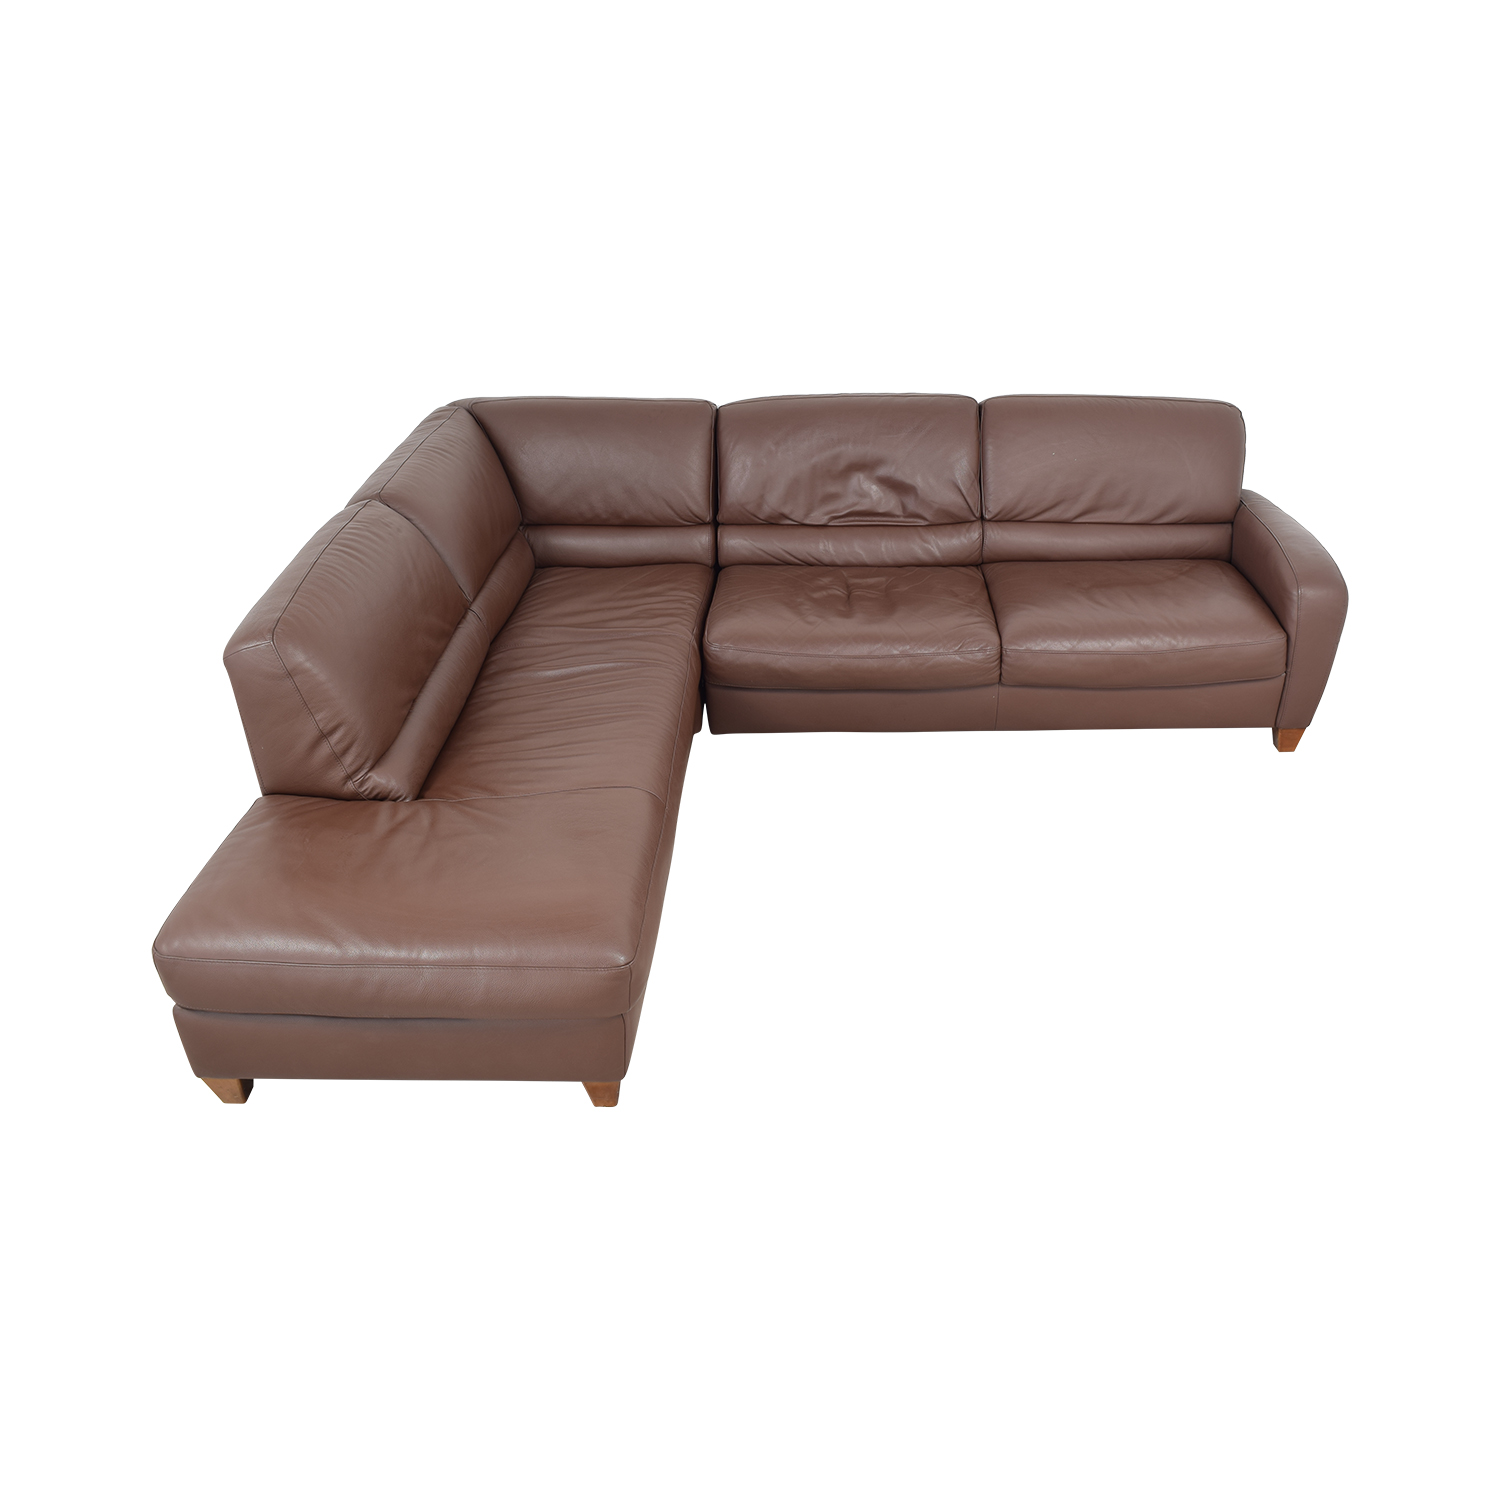 Italsofa Italsofa Sectional Sofa with Chaise nj